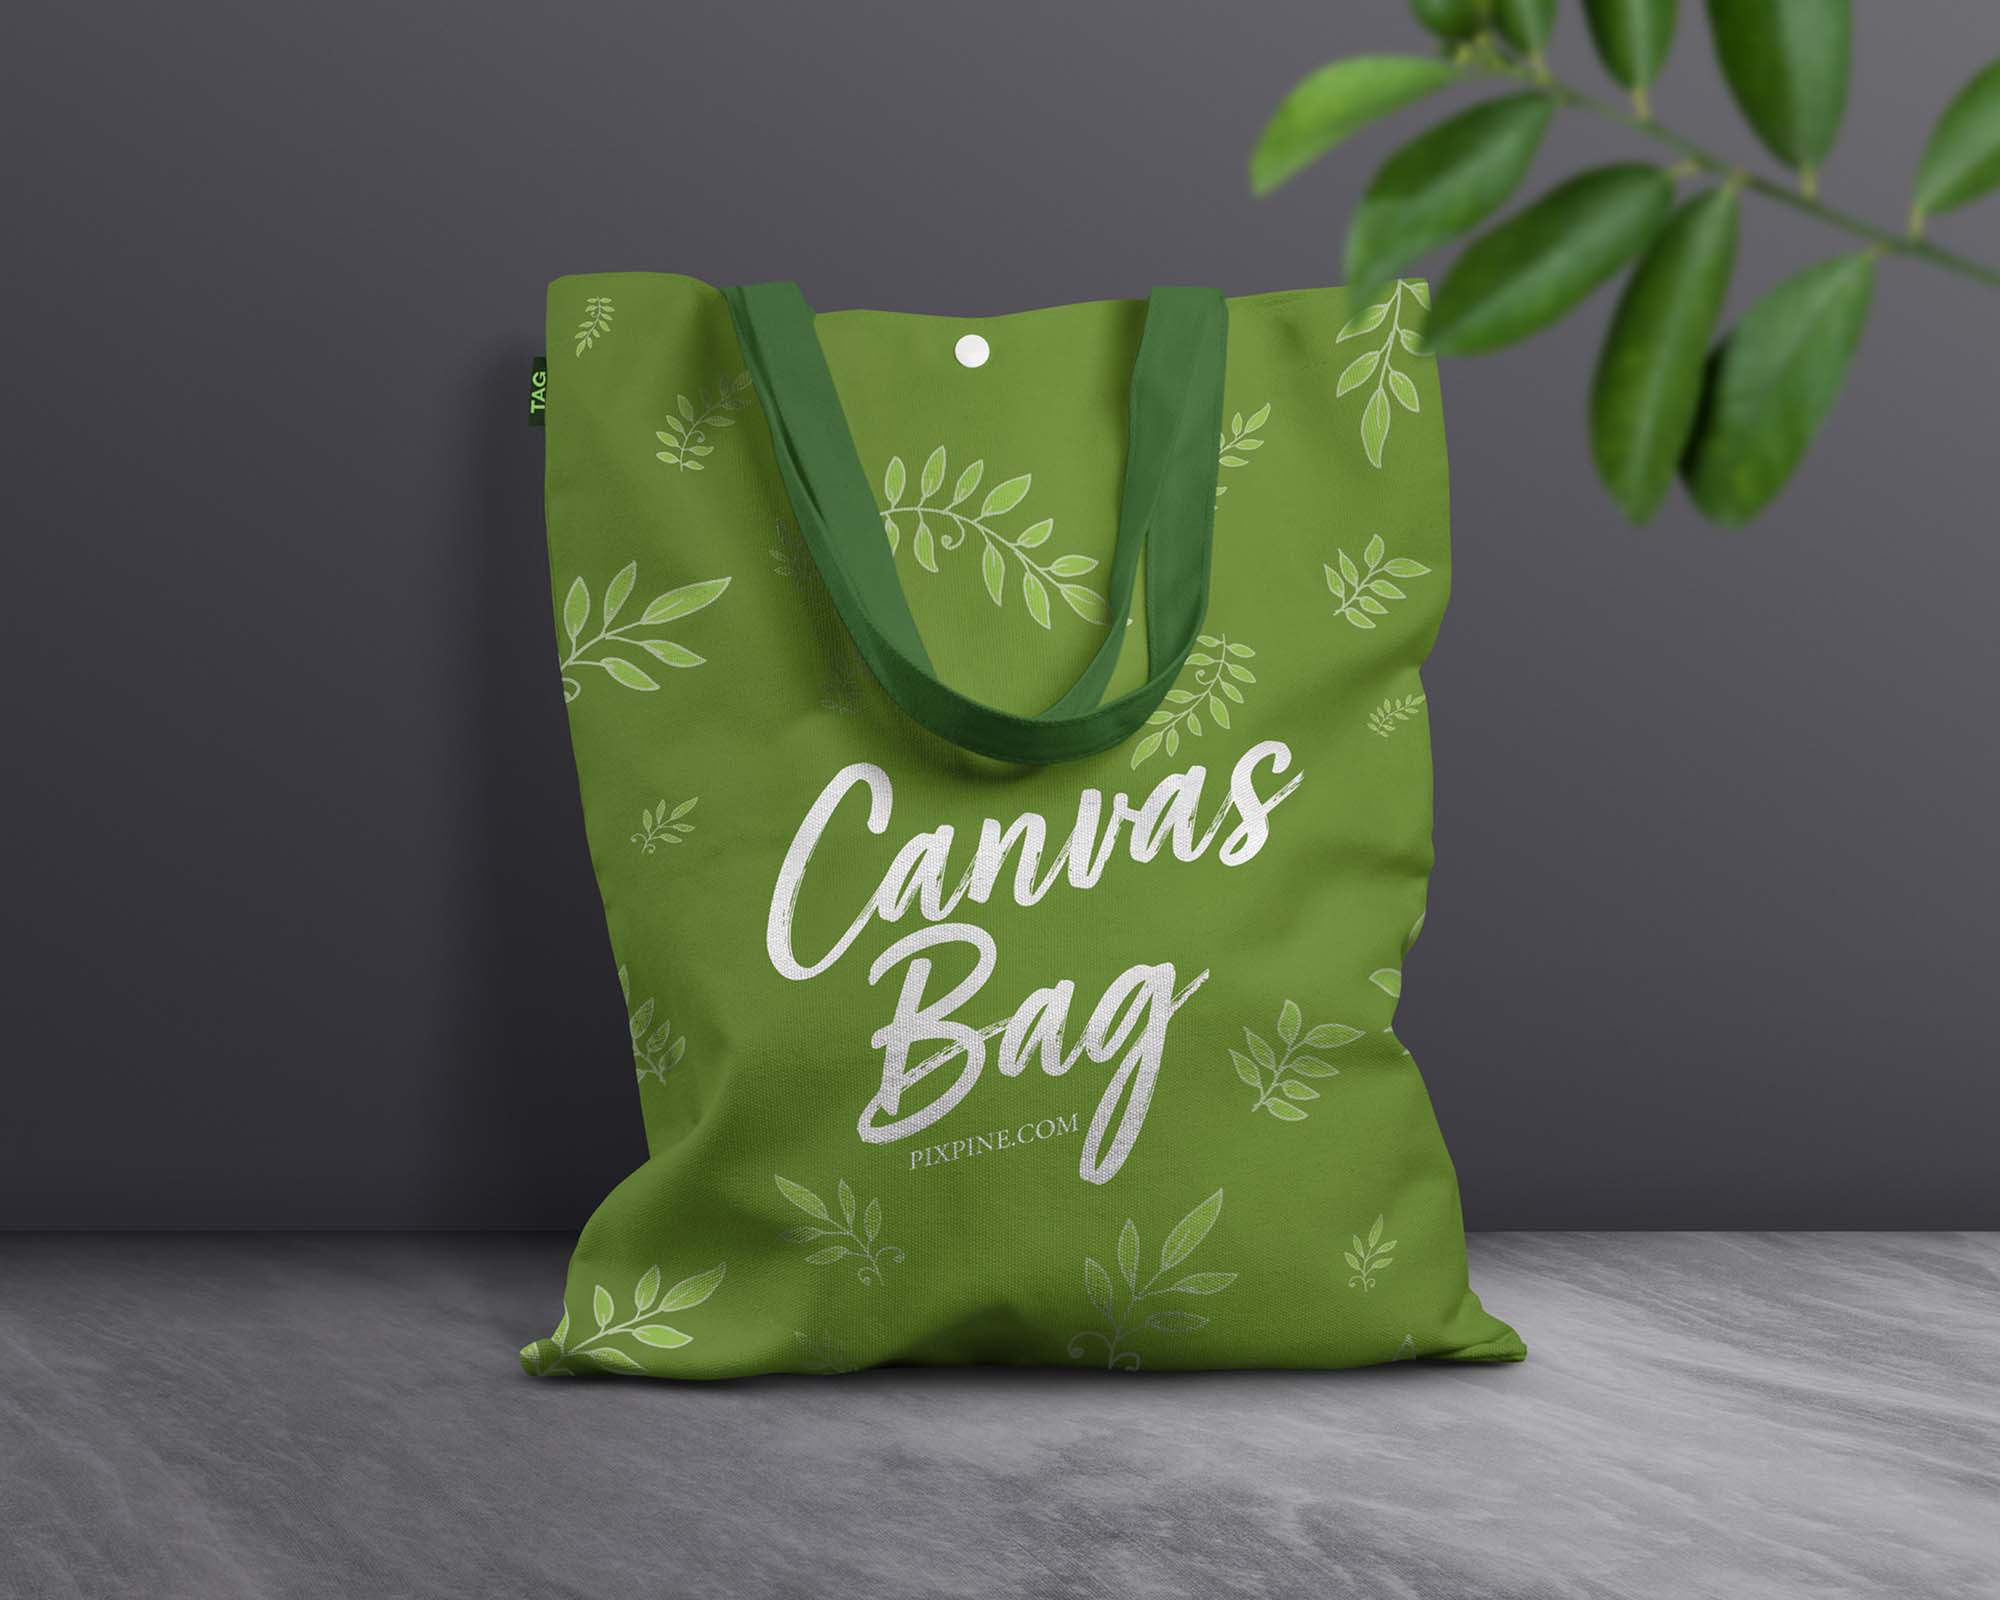 Canvas Bag Mockup 2